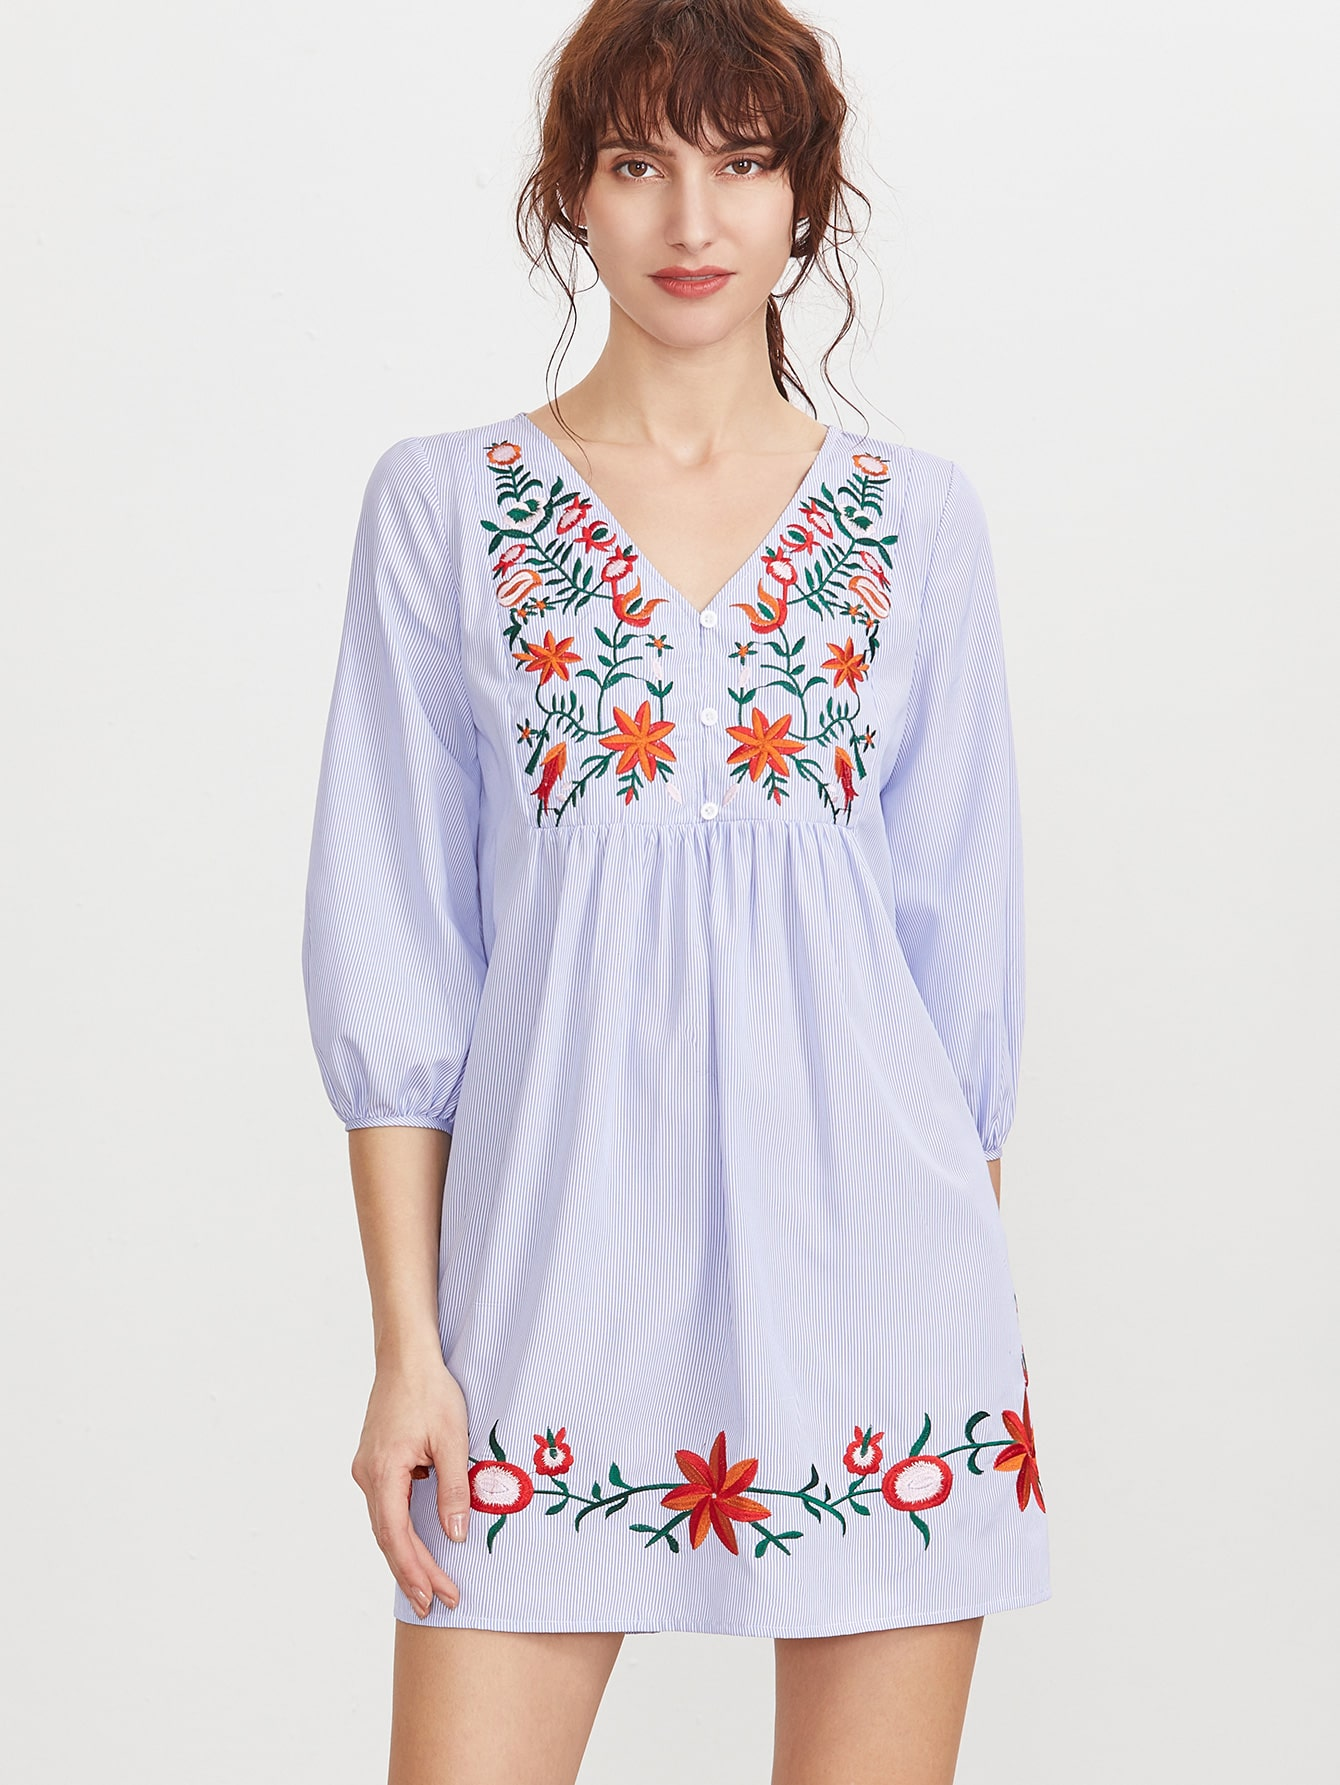 Blue Striped Button Front Lantern Sleeve Embroidered Dress pictures